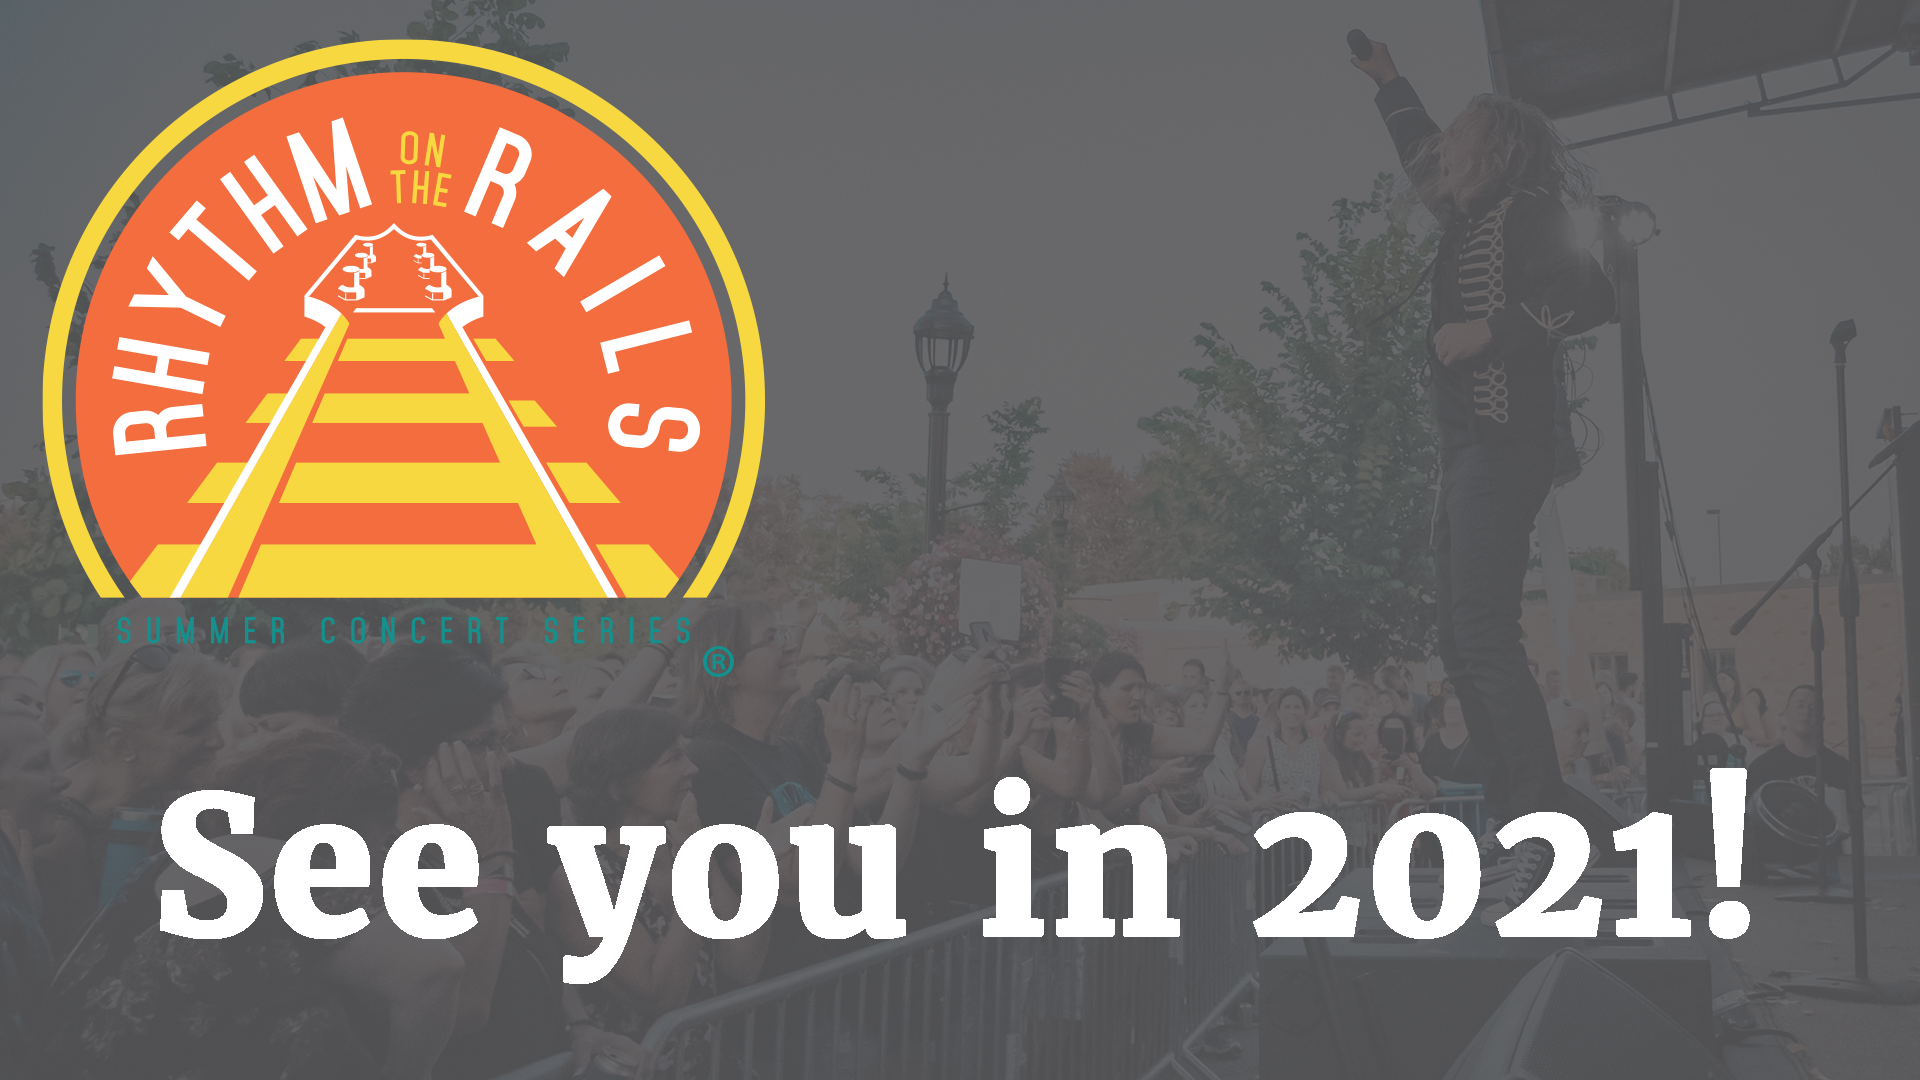 Rhythm on the Rails - See you in 2021!